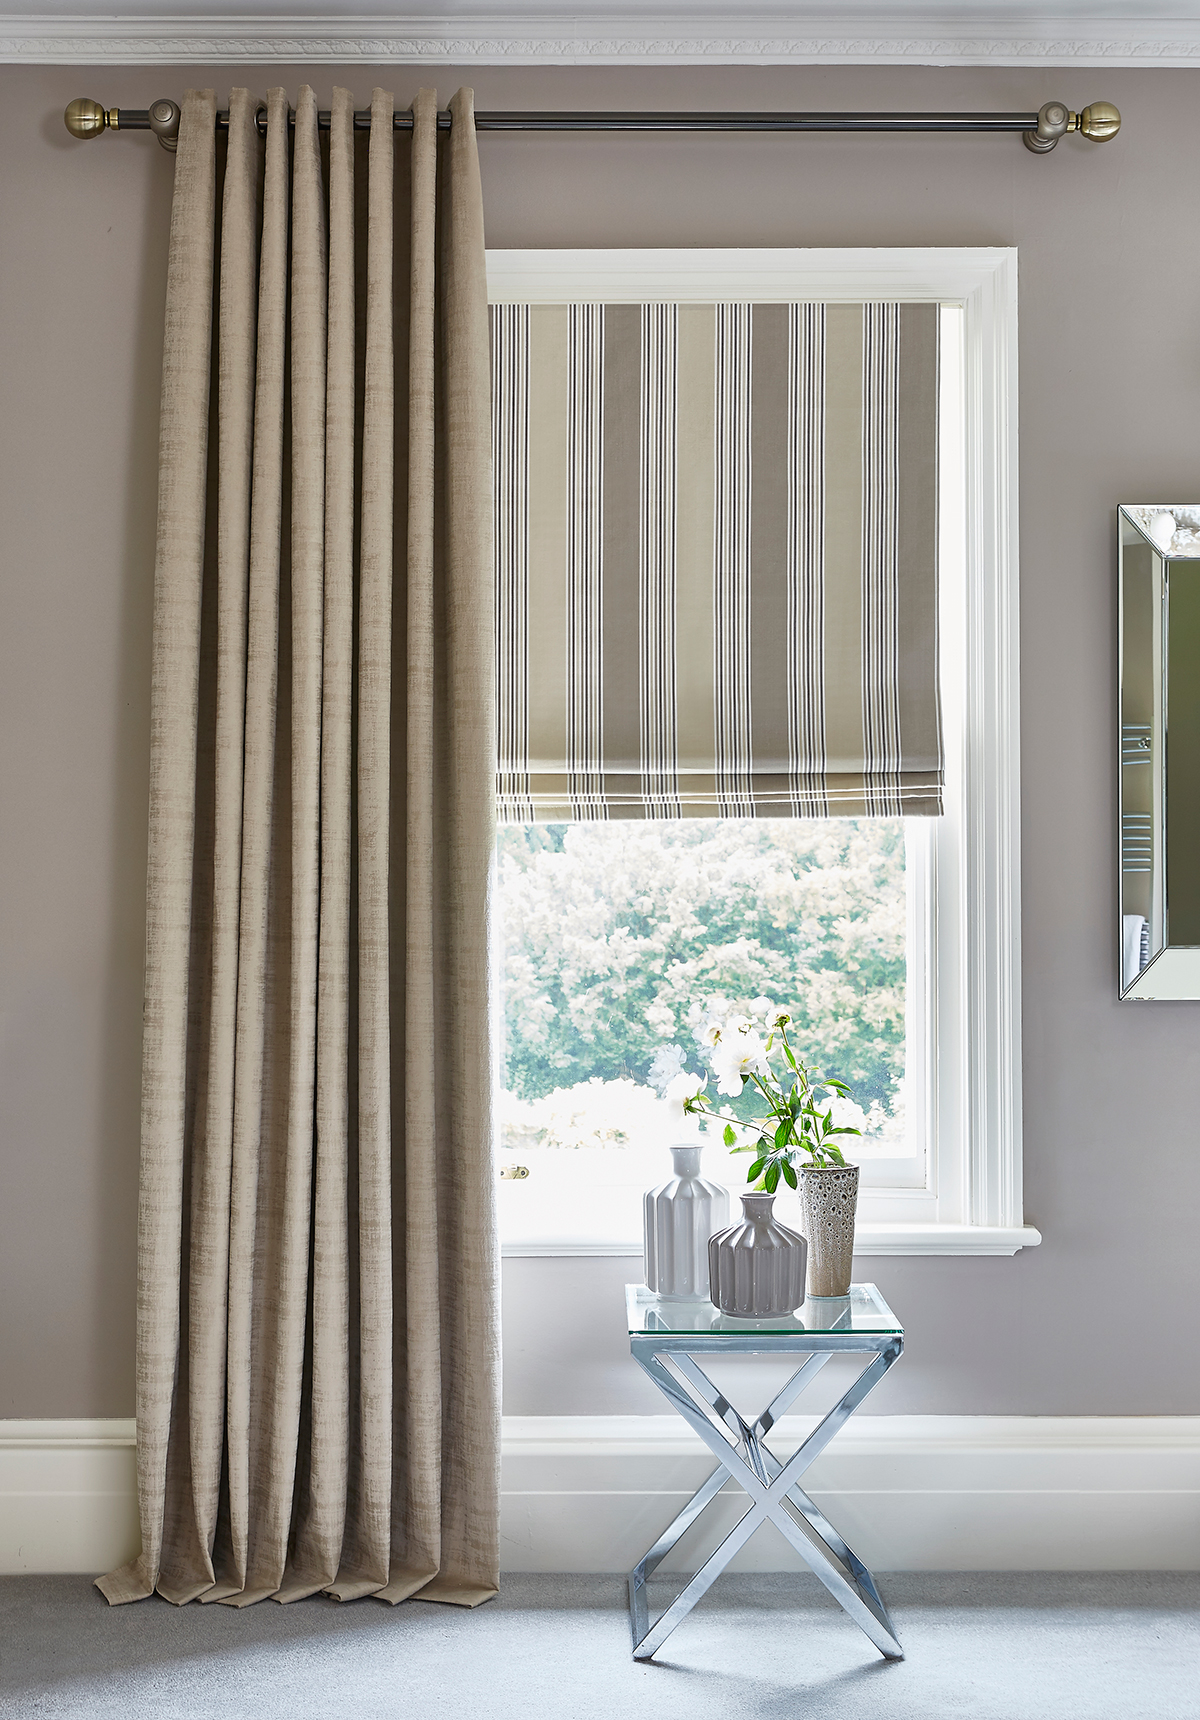 Elderberry Praline Roman Blinds from SLX